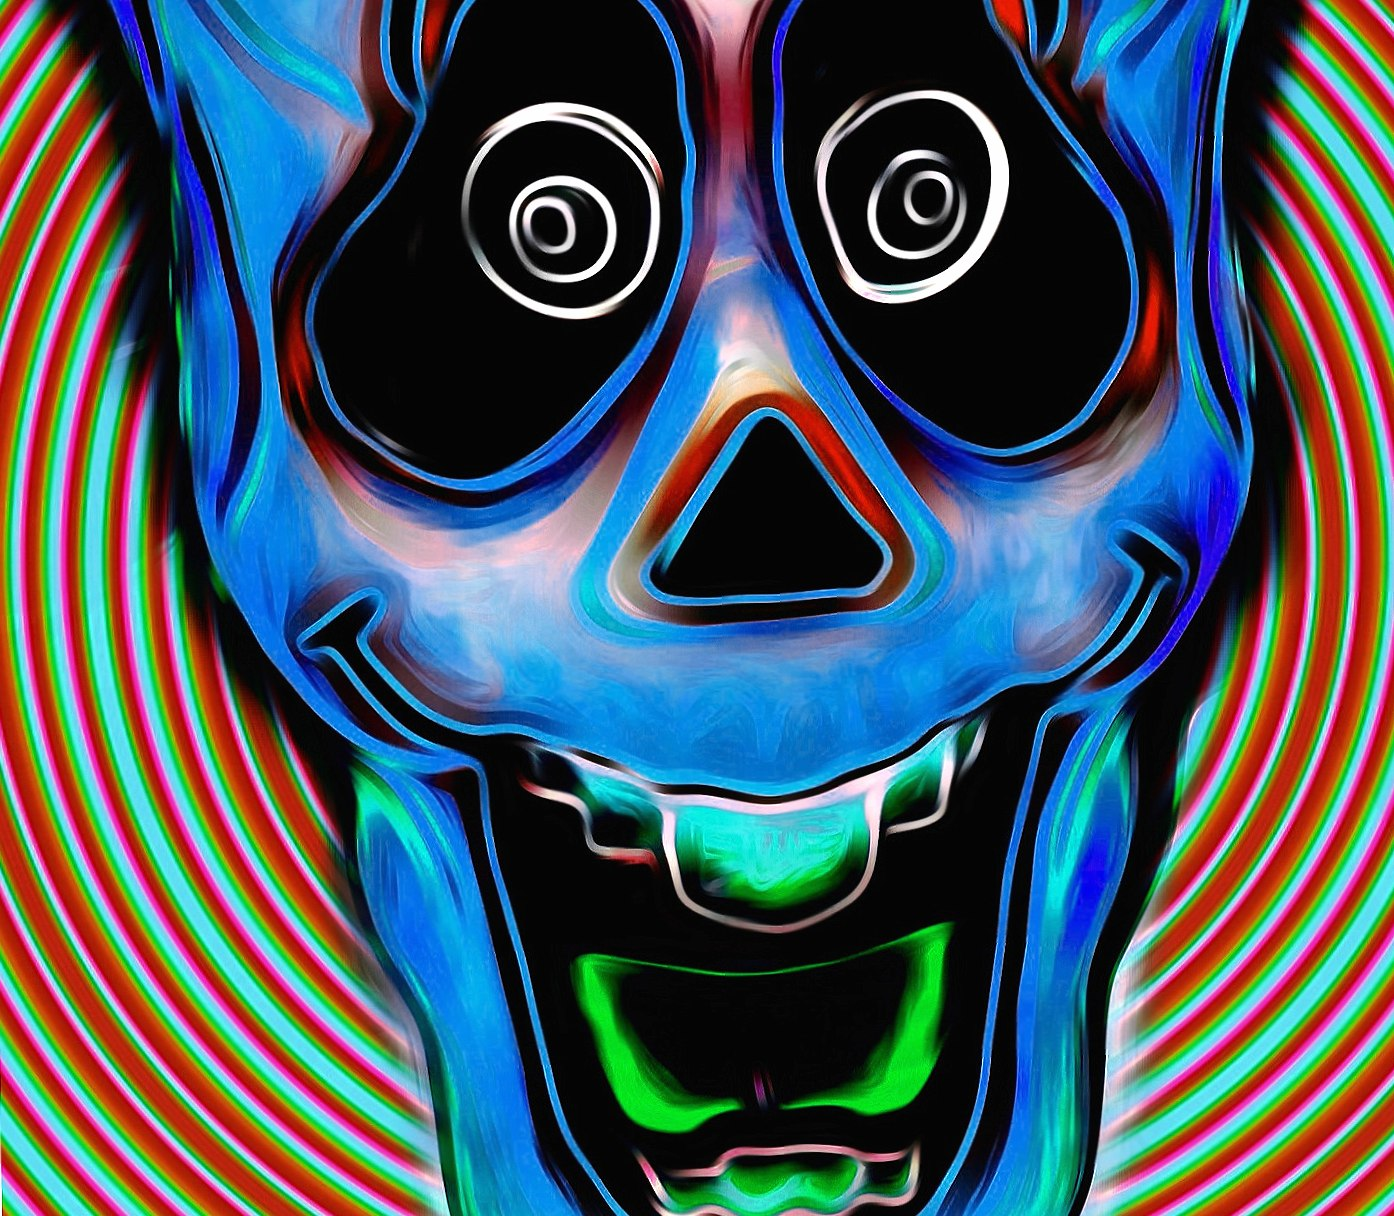 Blue trippy skull at 1024 x 768 size wallpapers HD quality